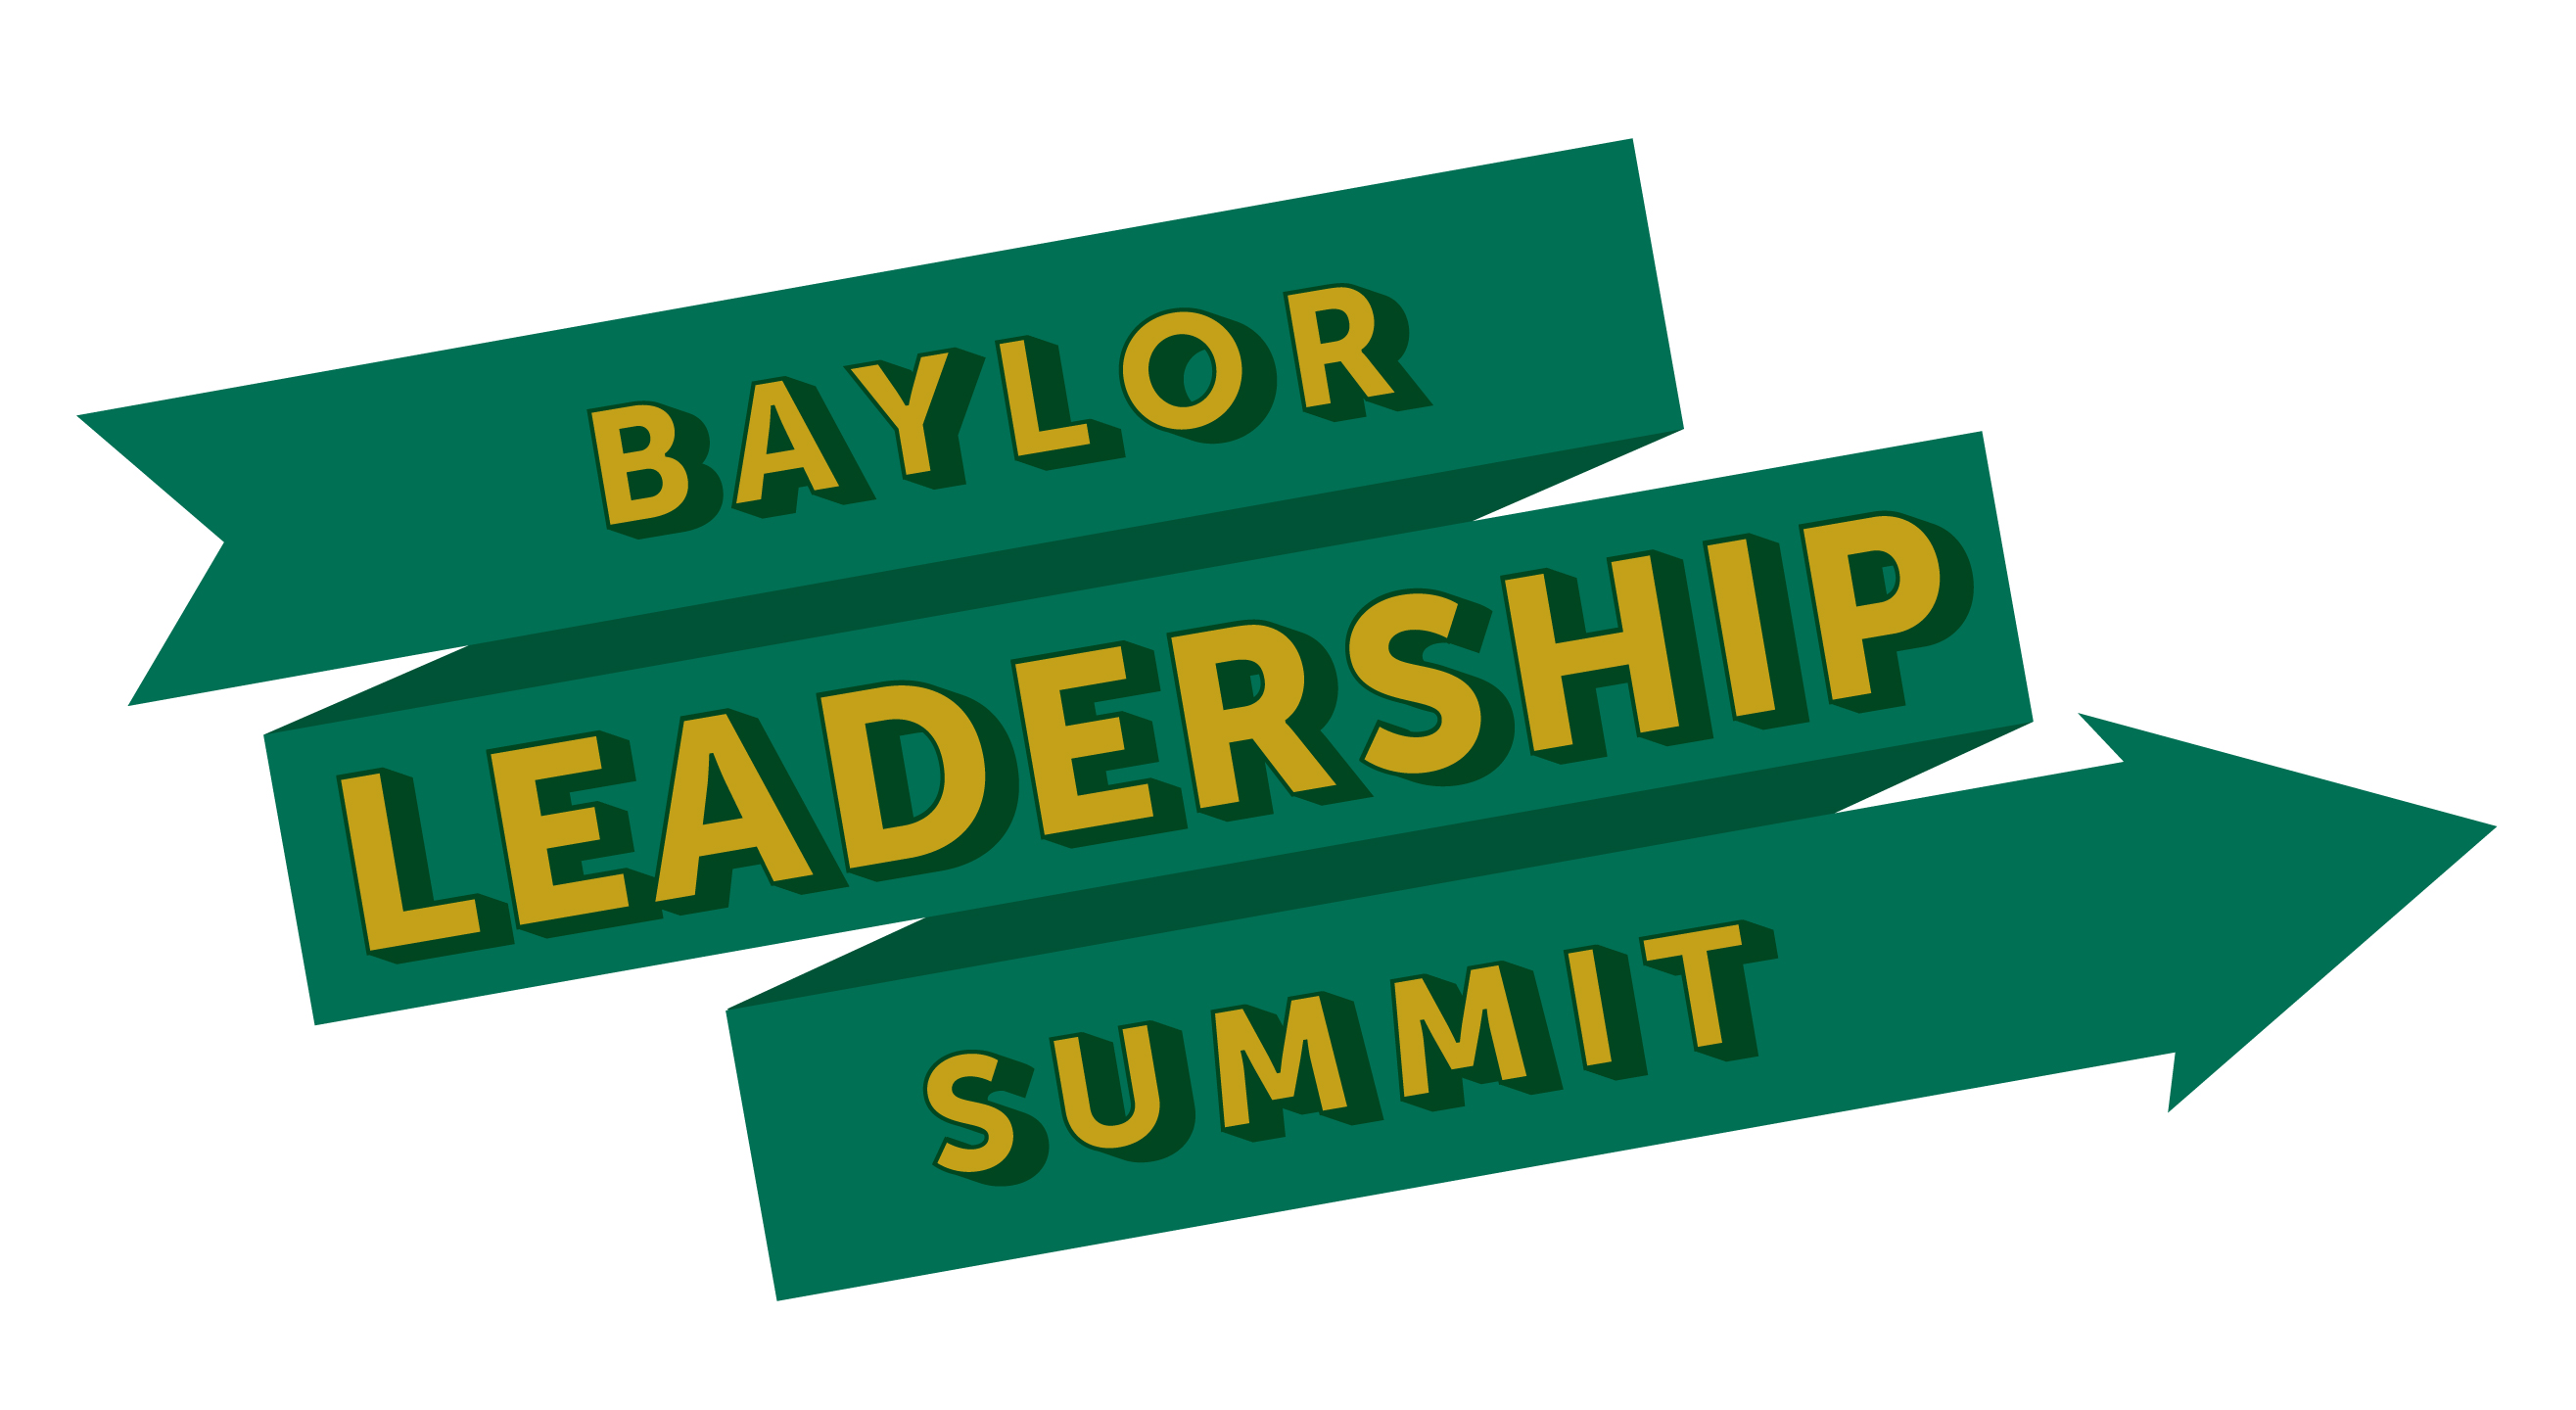 Baylor Leadership Summit